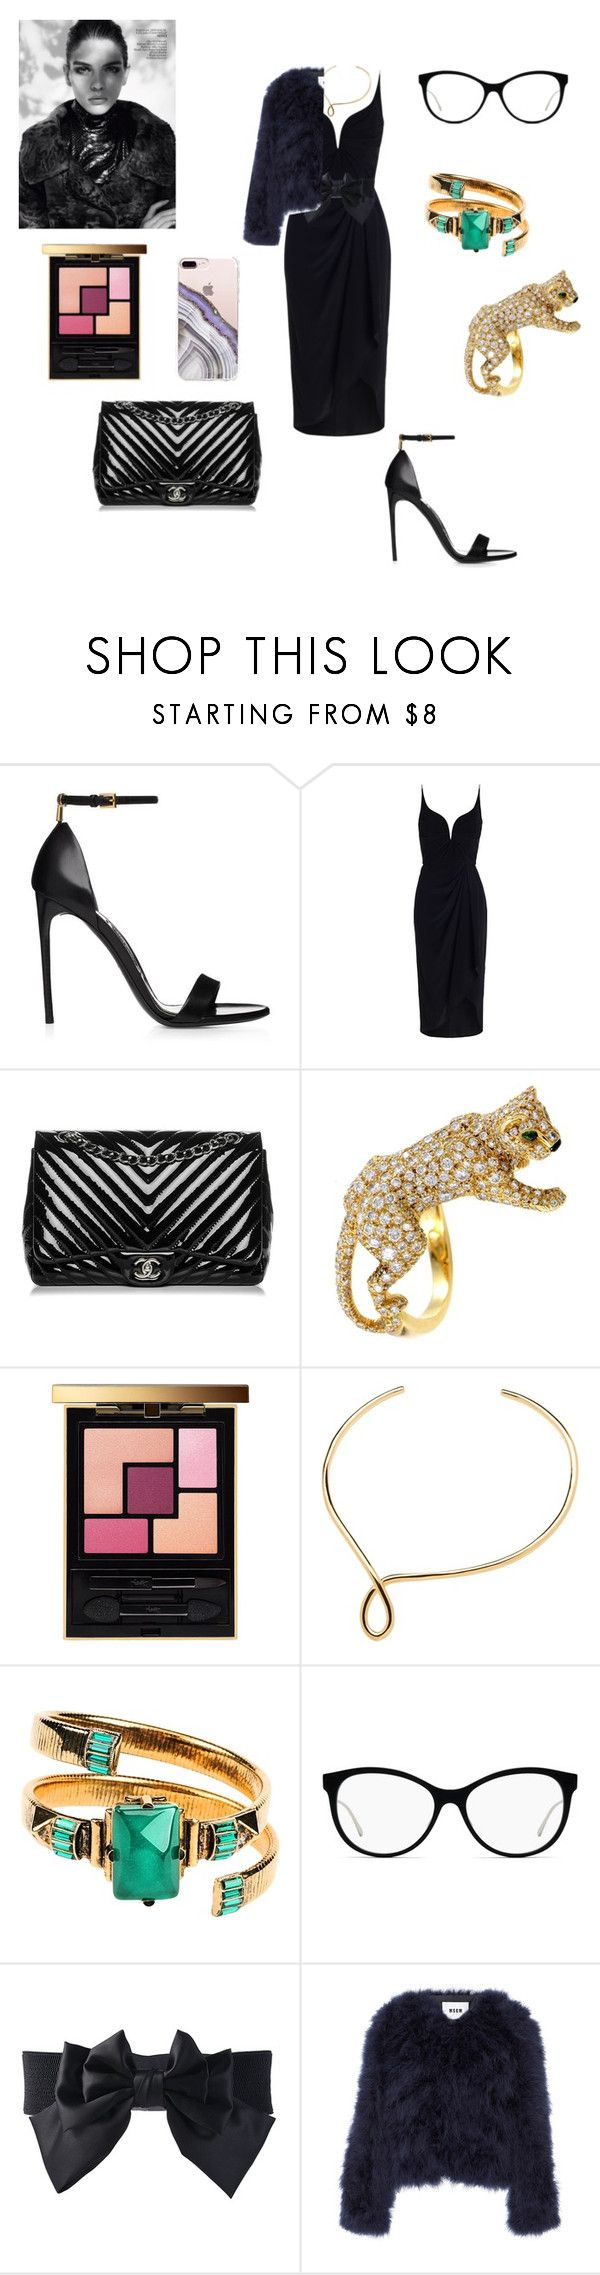 """""""Untitled #340"""" by gloriatovizi on Polyvore featuring Zimmermann, Chanel, Yves Saint Laurent, Emilio Pucci, MSGM and Steve Madden"""